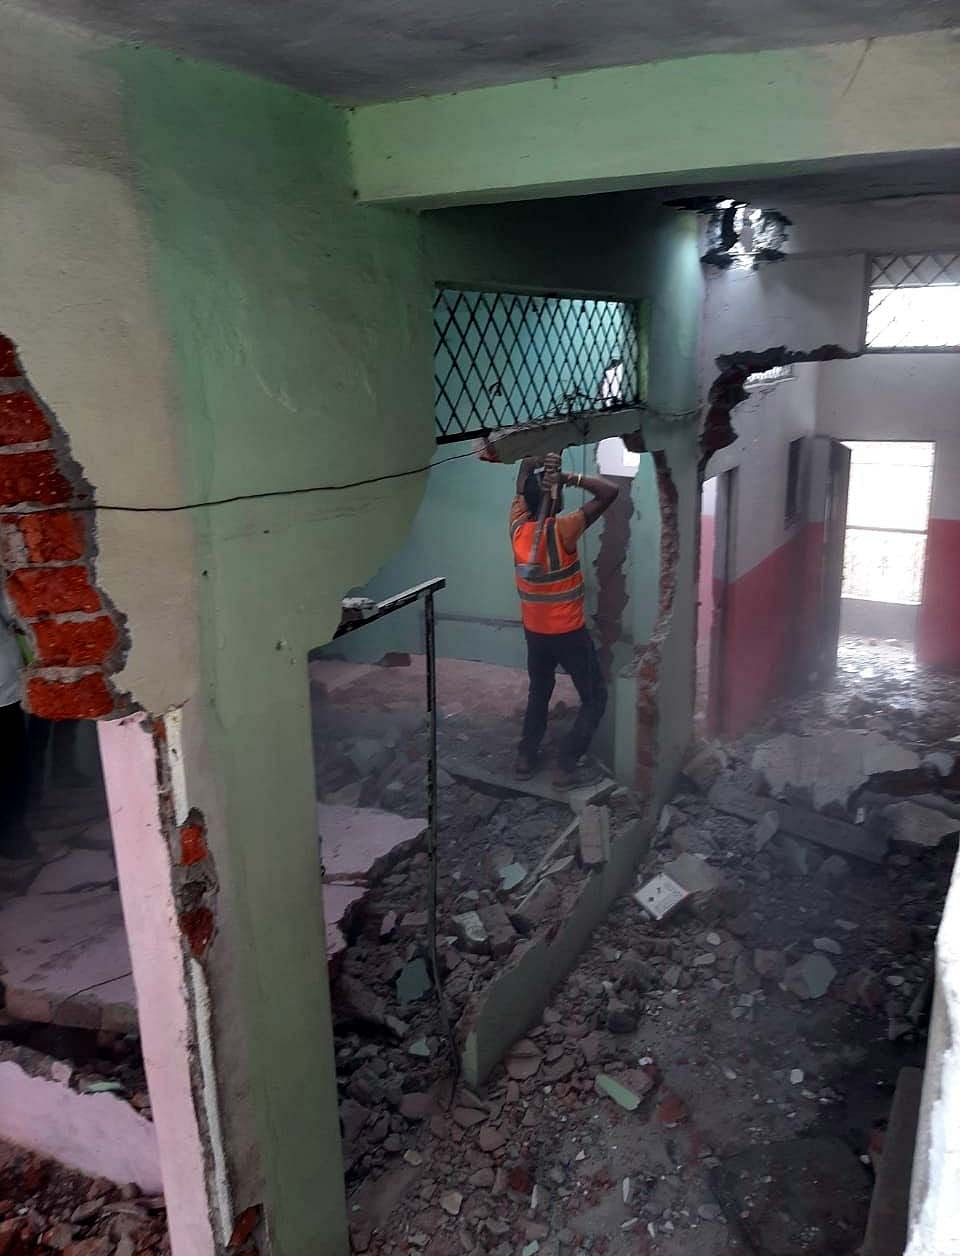 The district administration razes  the house of a criminal , Faizaan Bheda, who  is facing 28 serious charges, including murder, attempt to murder and rape, in various districts of the state.